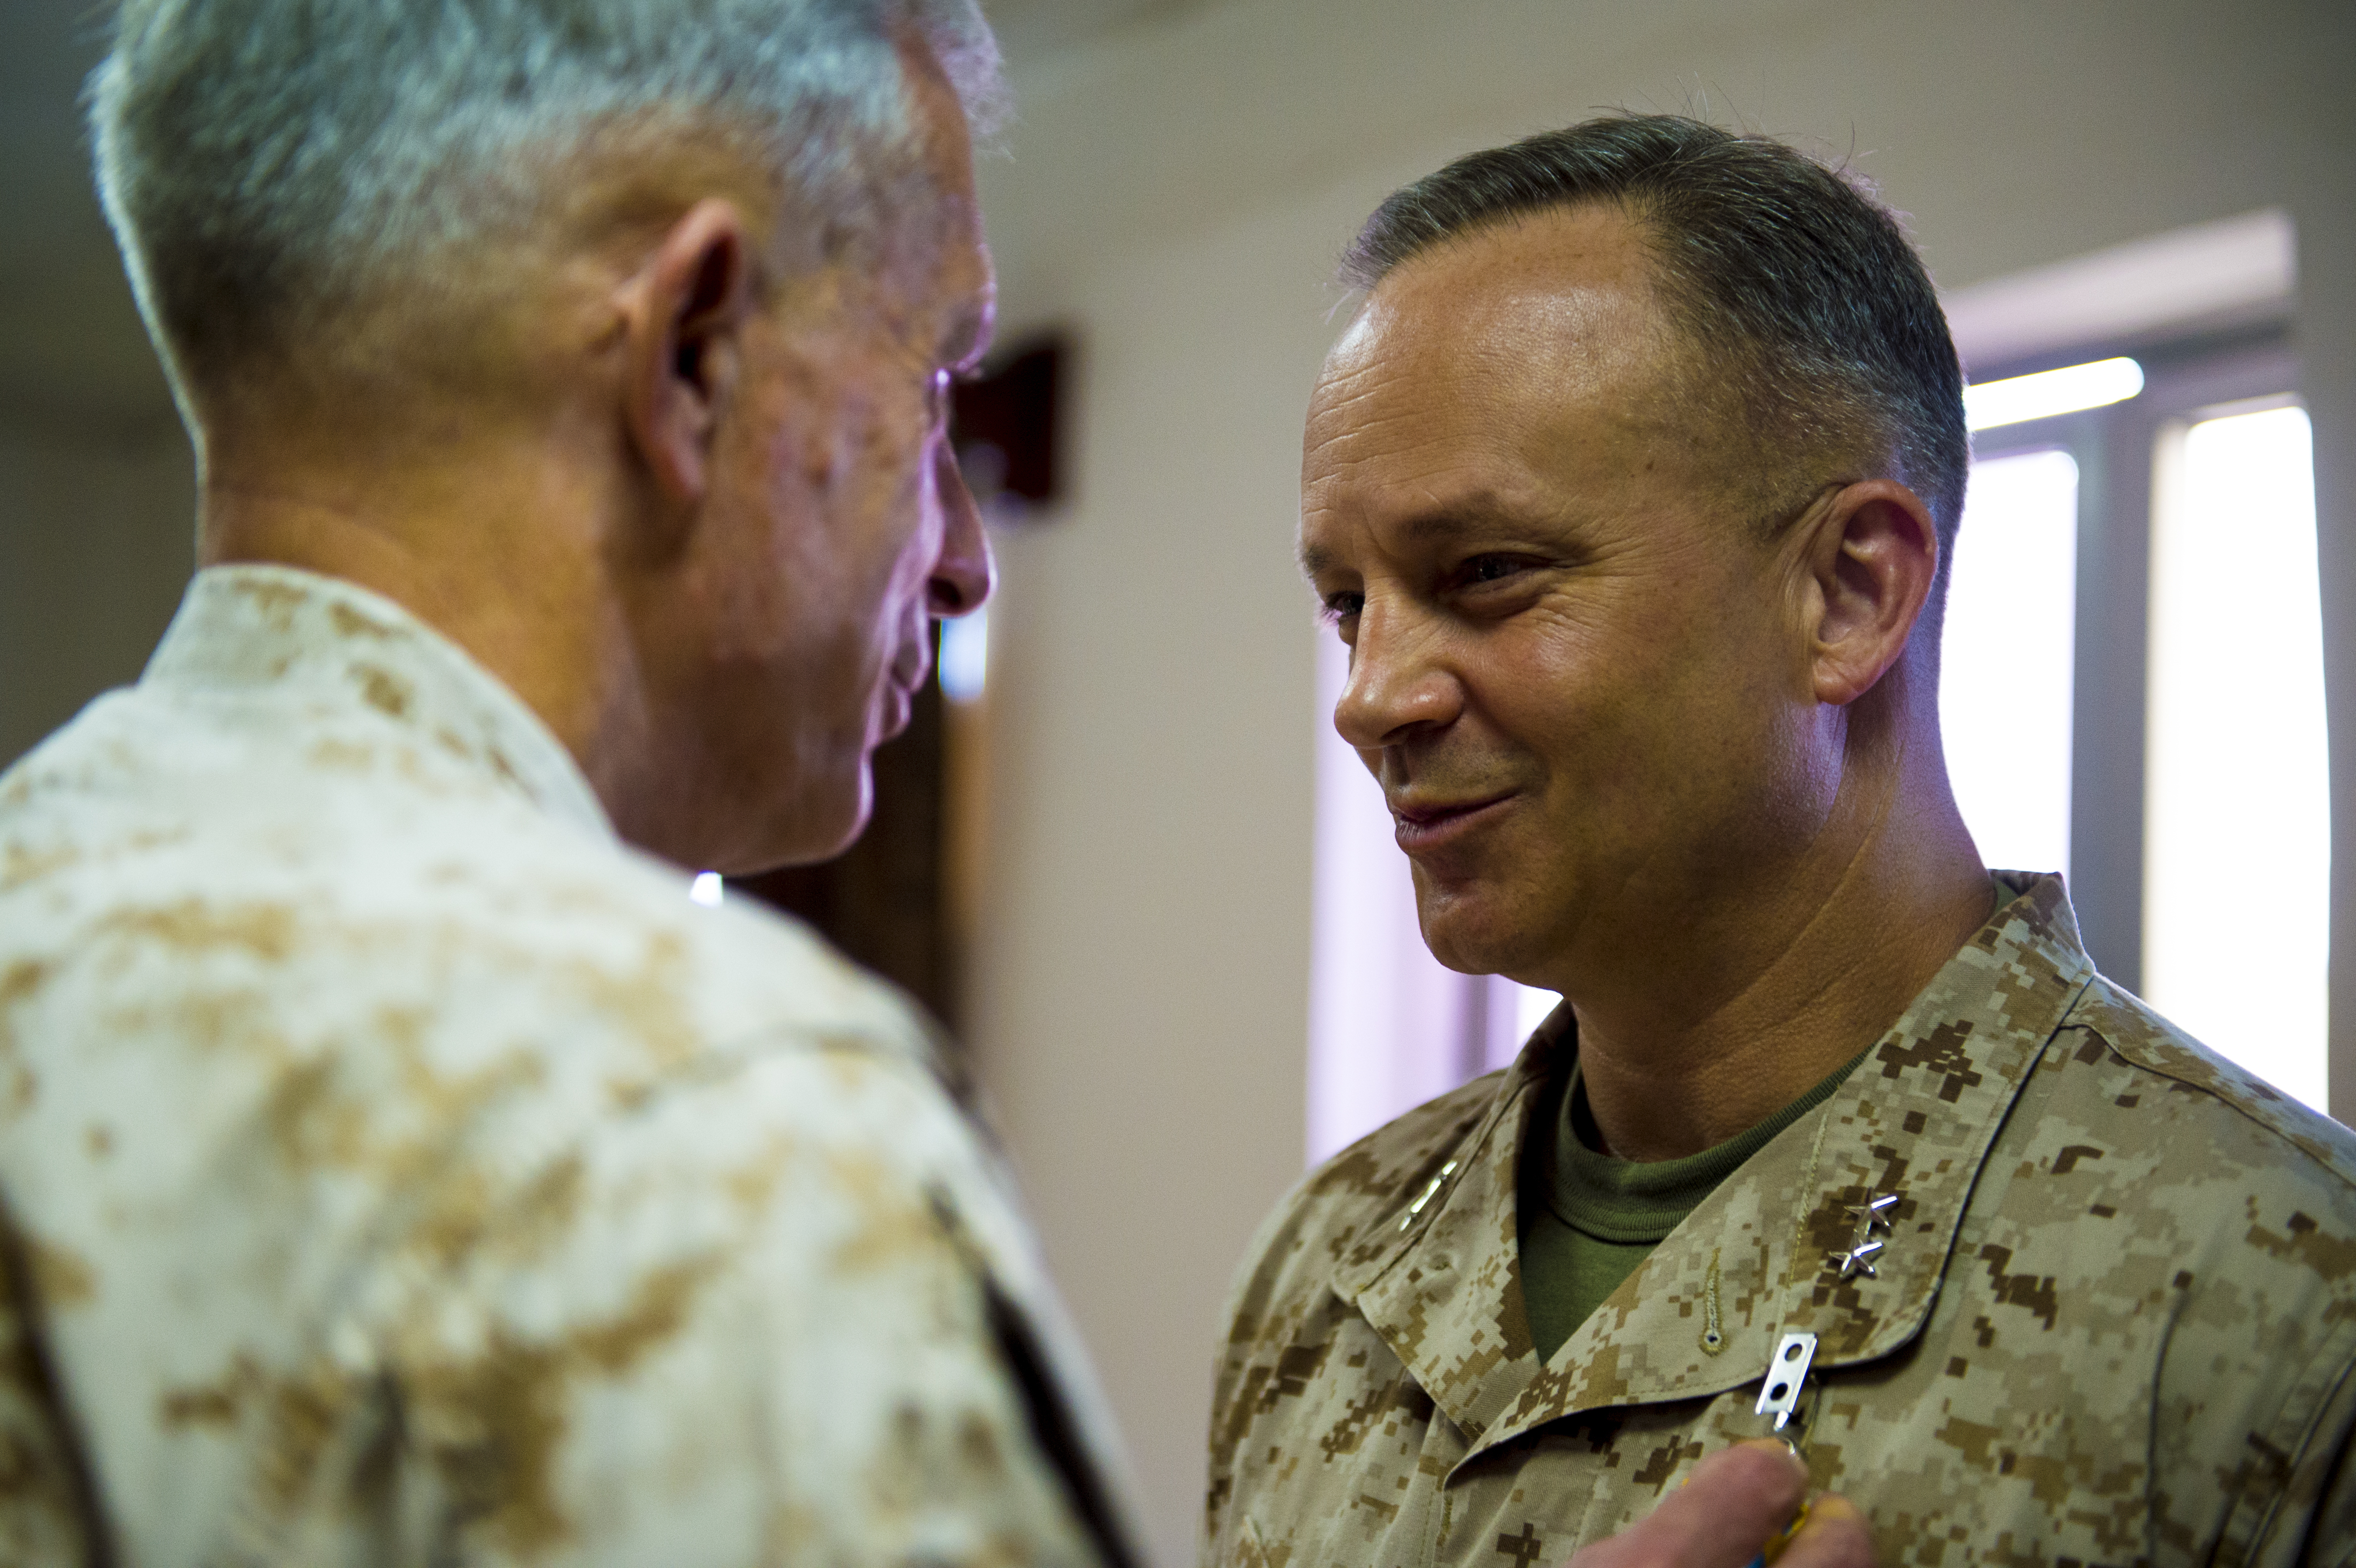 U.S. Marine Corps Gen. Thomas Waldhauser, Commander of United States Africa Command, presents Maj. Gen. David Furness, Commander of Combined Joint Task Force Horn of Africa, the defense superior service medal on Camp Lemonnier, Djibouti, May 1, 2018. Furness commanded CTJF-HOA from May 1, 2017 to May 1, 2018. (U.S. Air Force photo by Senior Airman Scott Jackson)